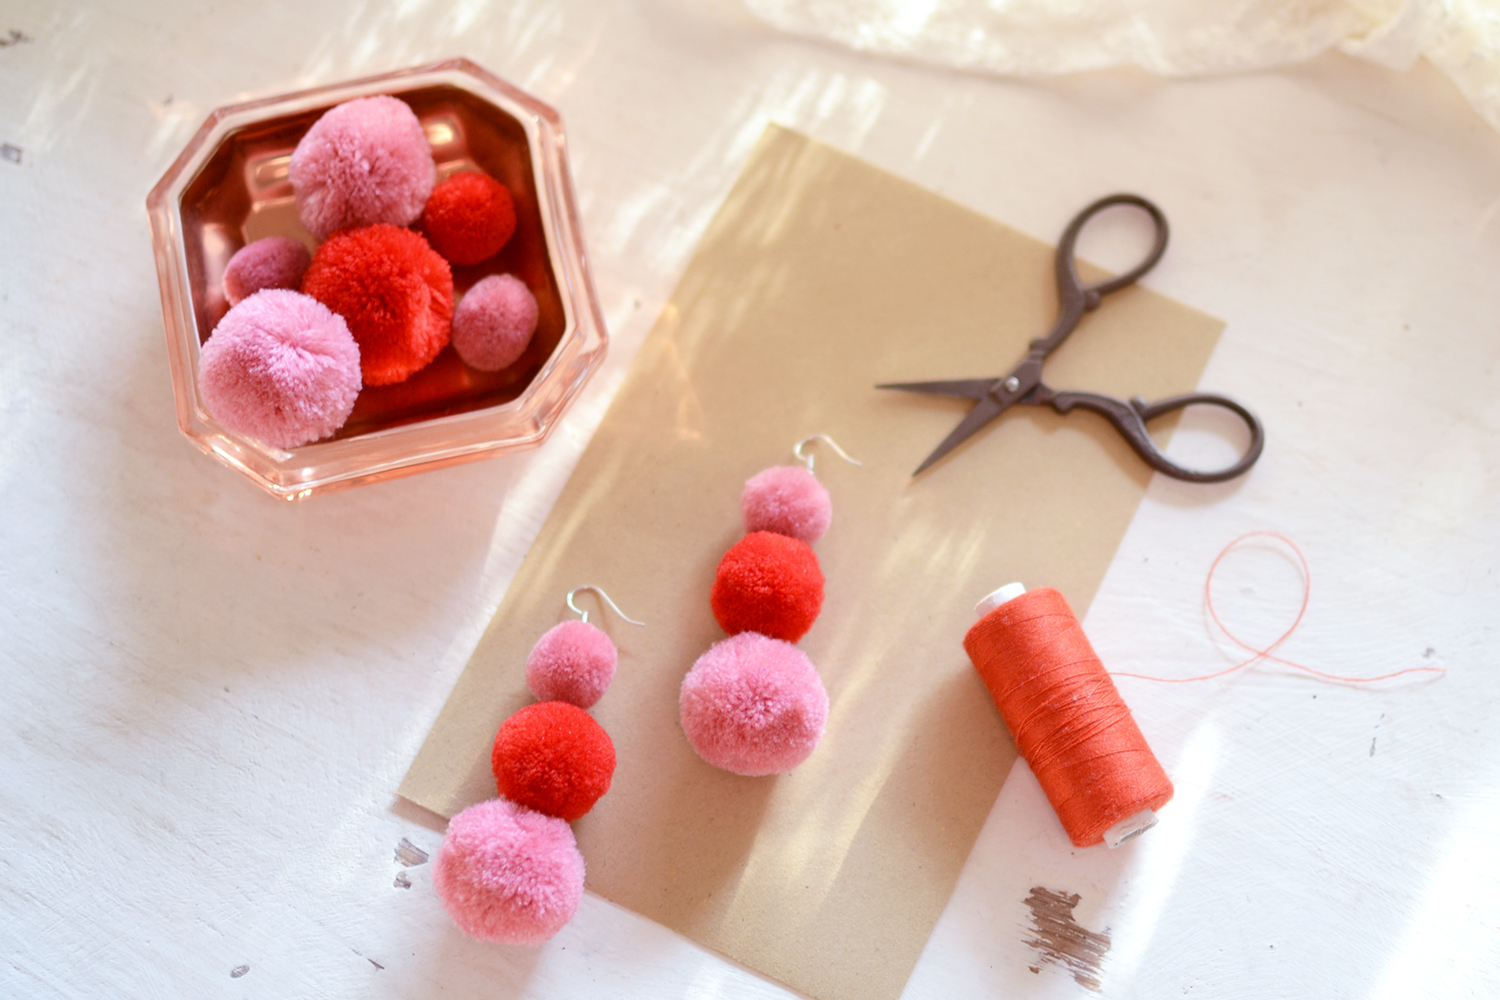 Retromantisch retro romantisch blog DIY earrings pom pom pink red cute zelfgemaakt 1